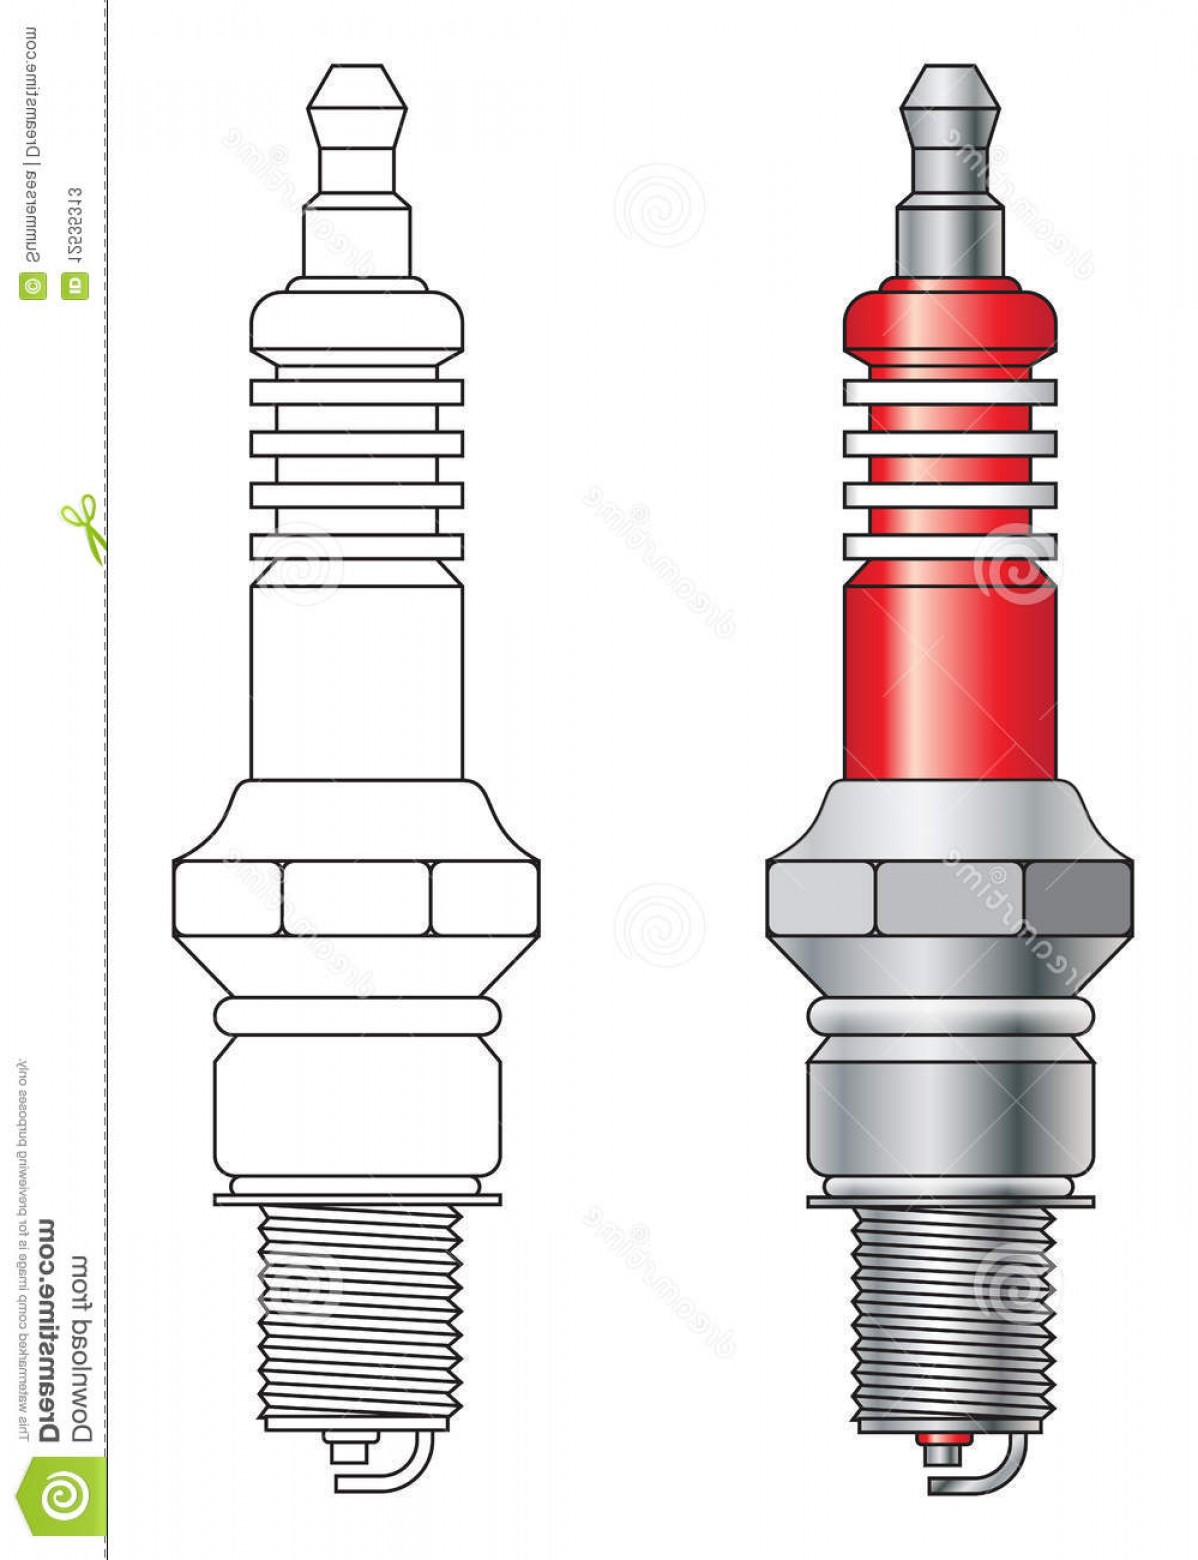 Spark Plug Vector: Stock Photos Spark Plug Vector Image